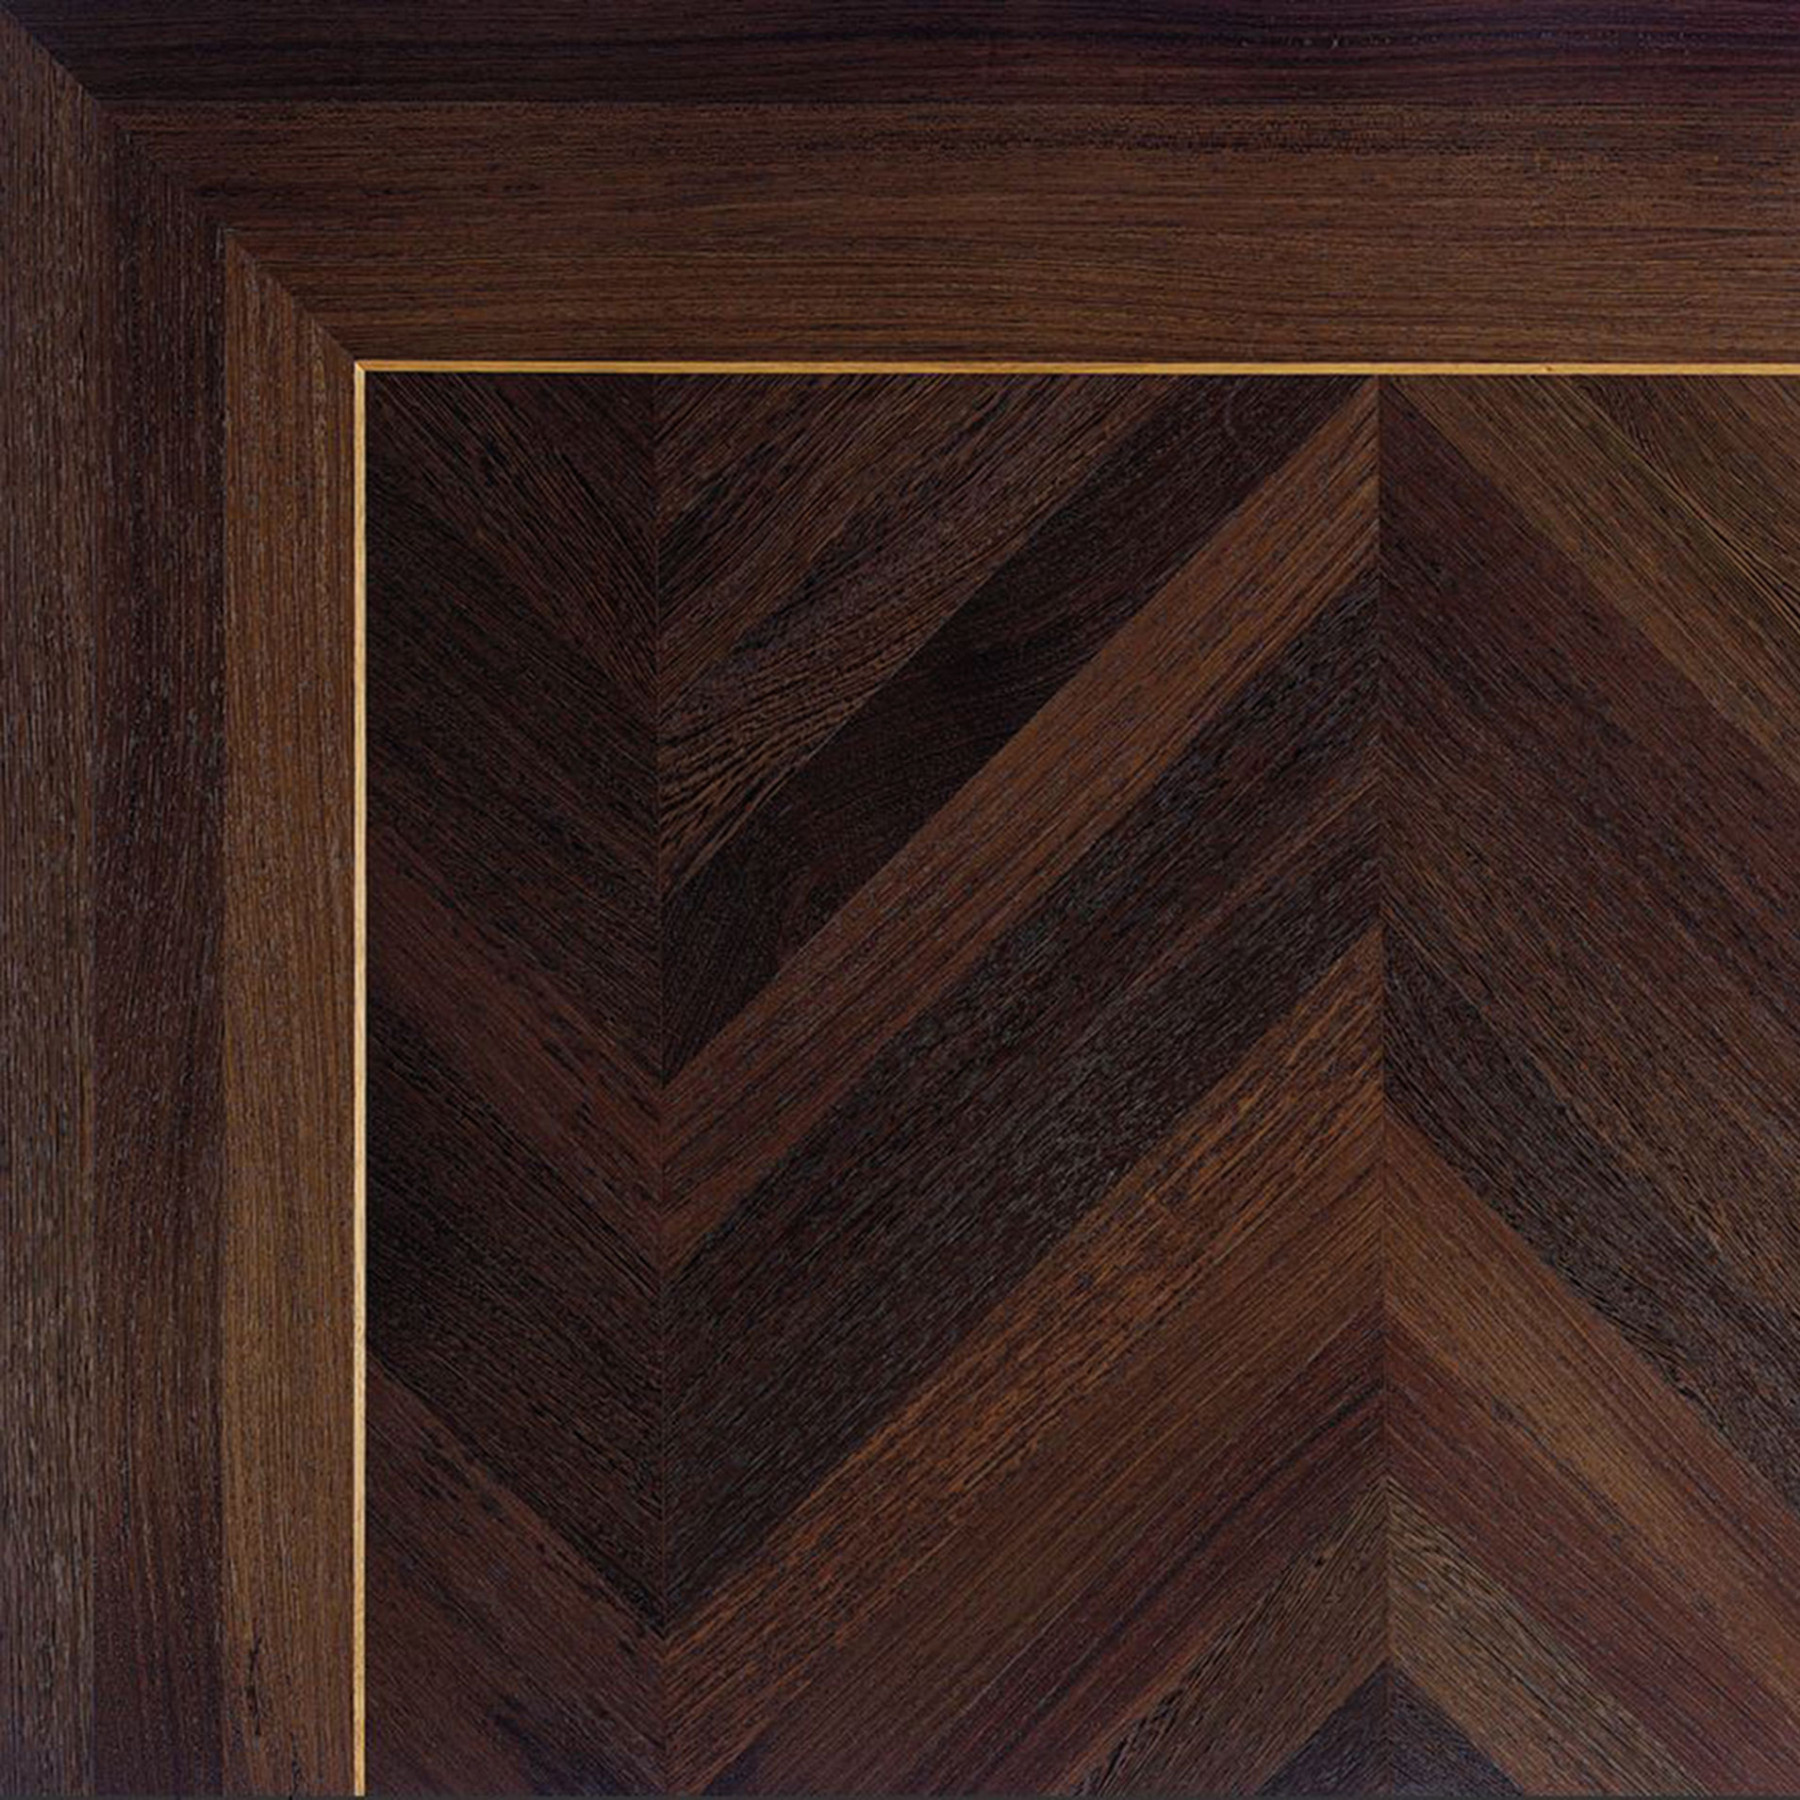 Brass Inlay in a Natural Wenge Floor | Element 7